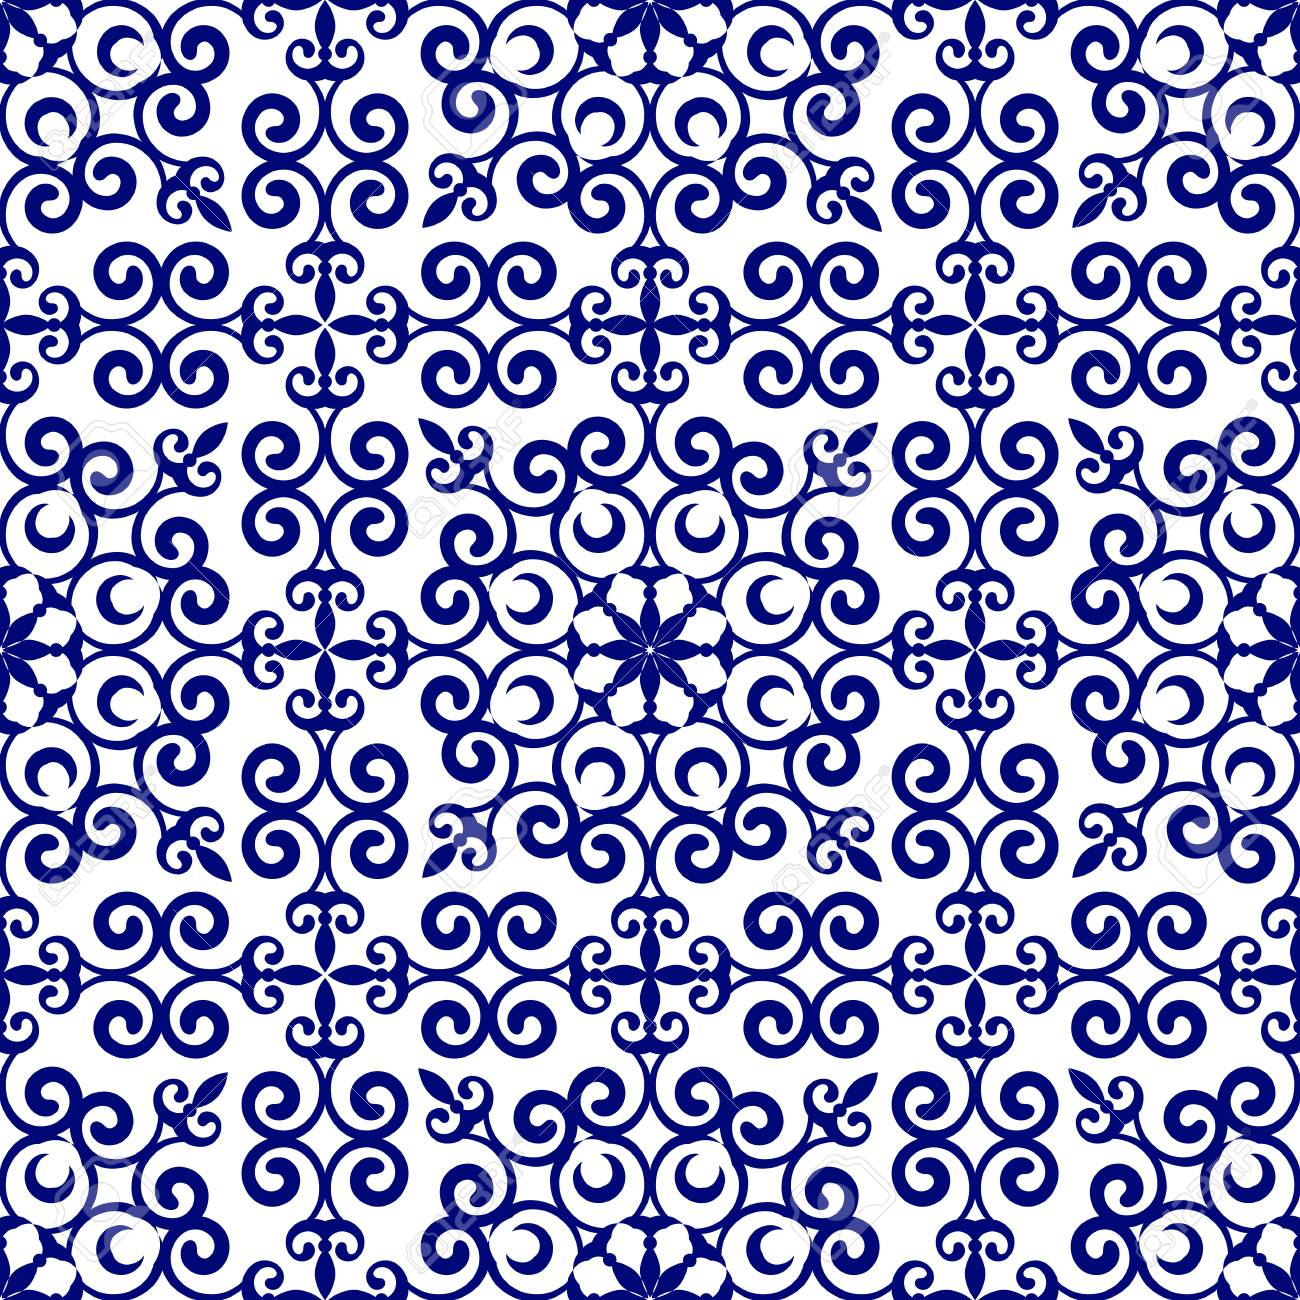 Porcelain Pattern Chinese And Japanese Style Blue And White Royalty Free Cliparts Vectors And Stock Illustration Image 112808959